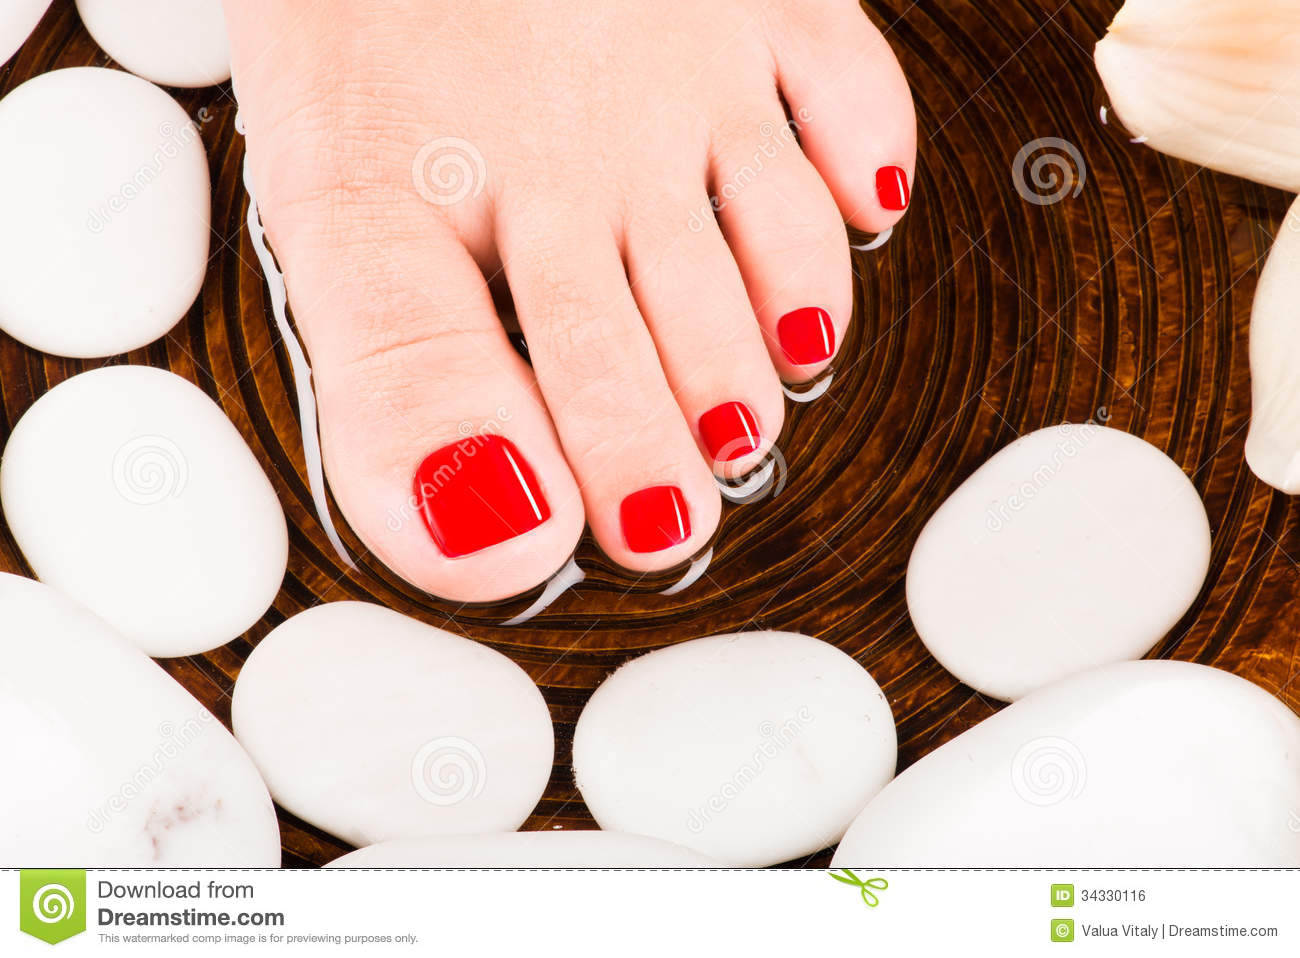 ... similar stock images of ` Beautiful female feet with red pedicure